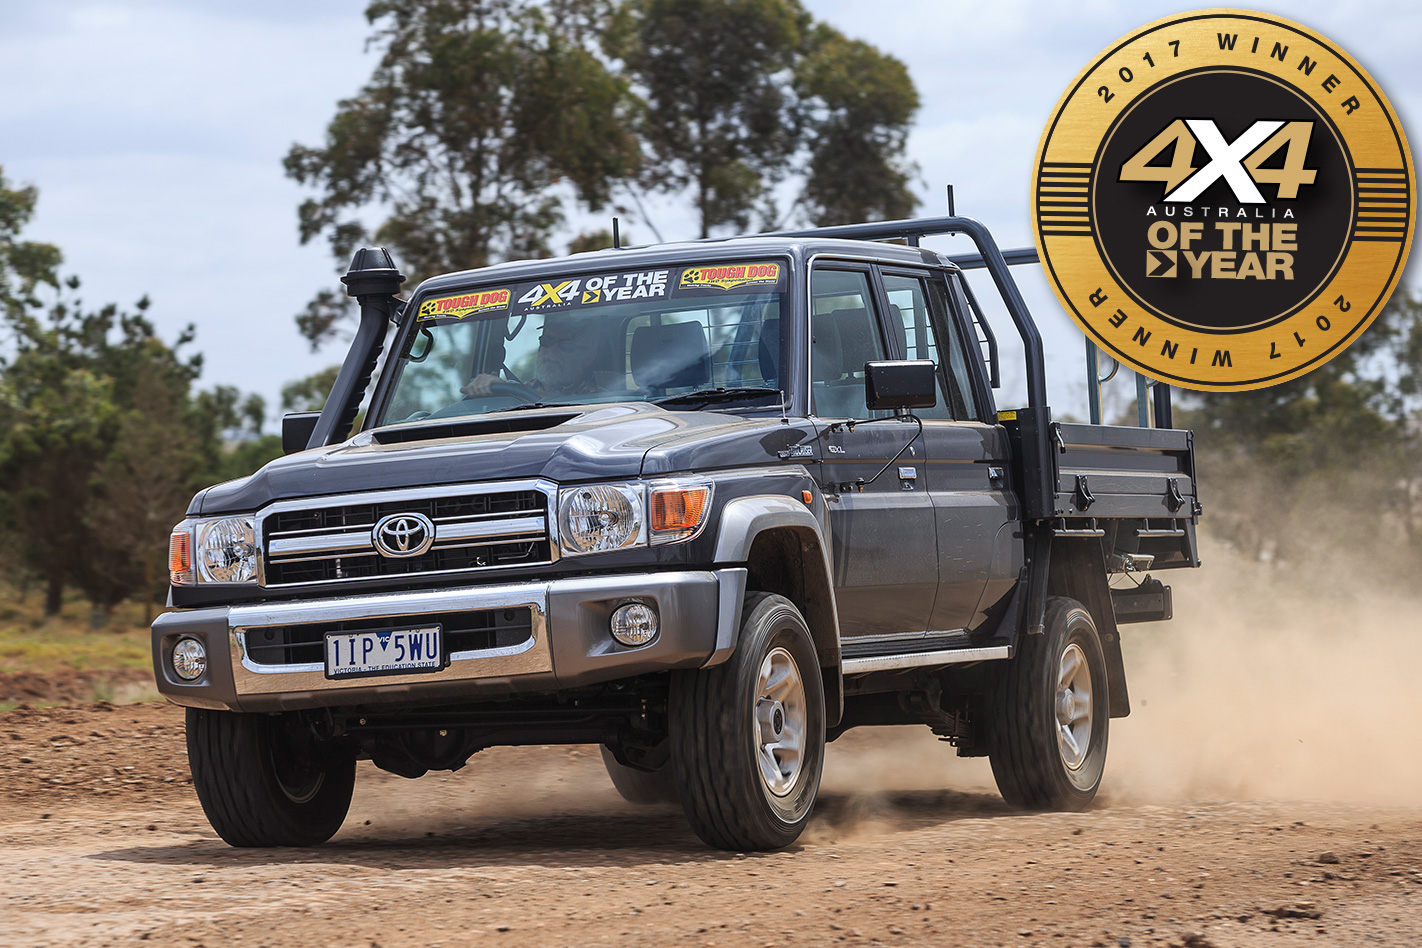 2017 4x4 of the year winner toyota landcruiser 79 double cab 4x4 australia. Black Bedroom Furniture Sets. Home Design Ideas